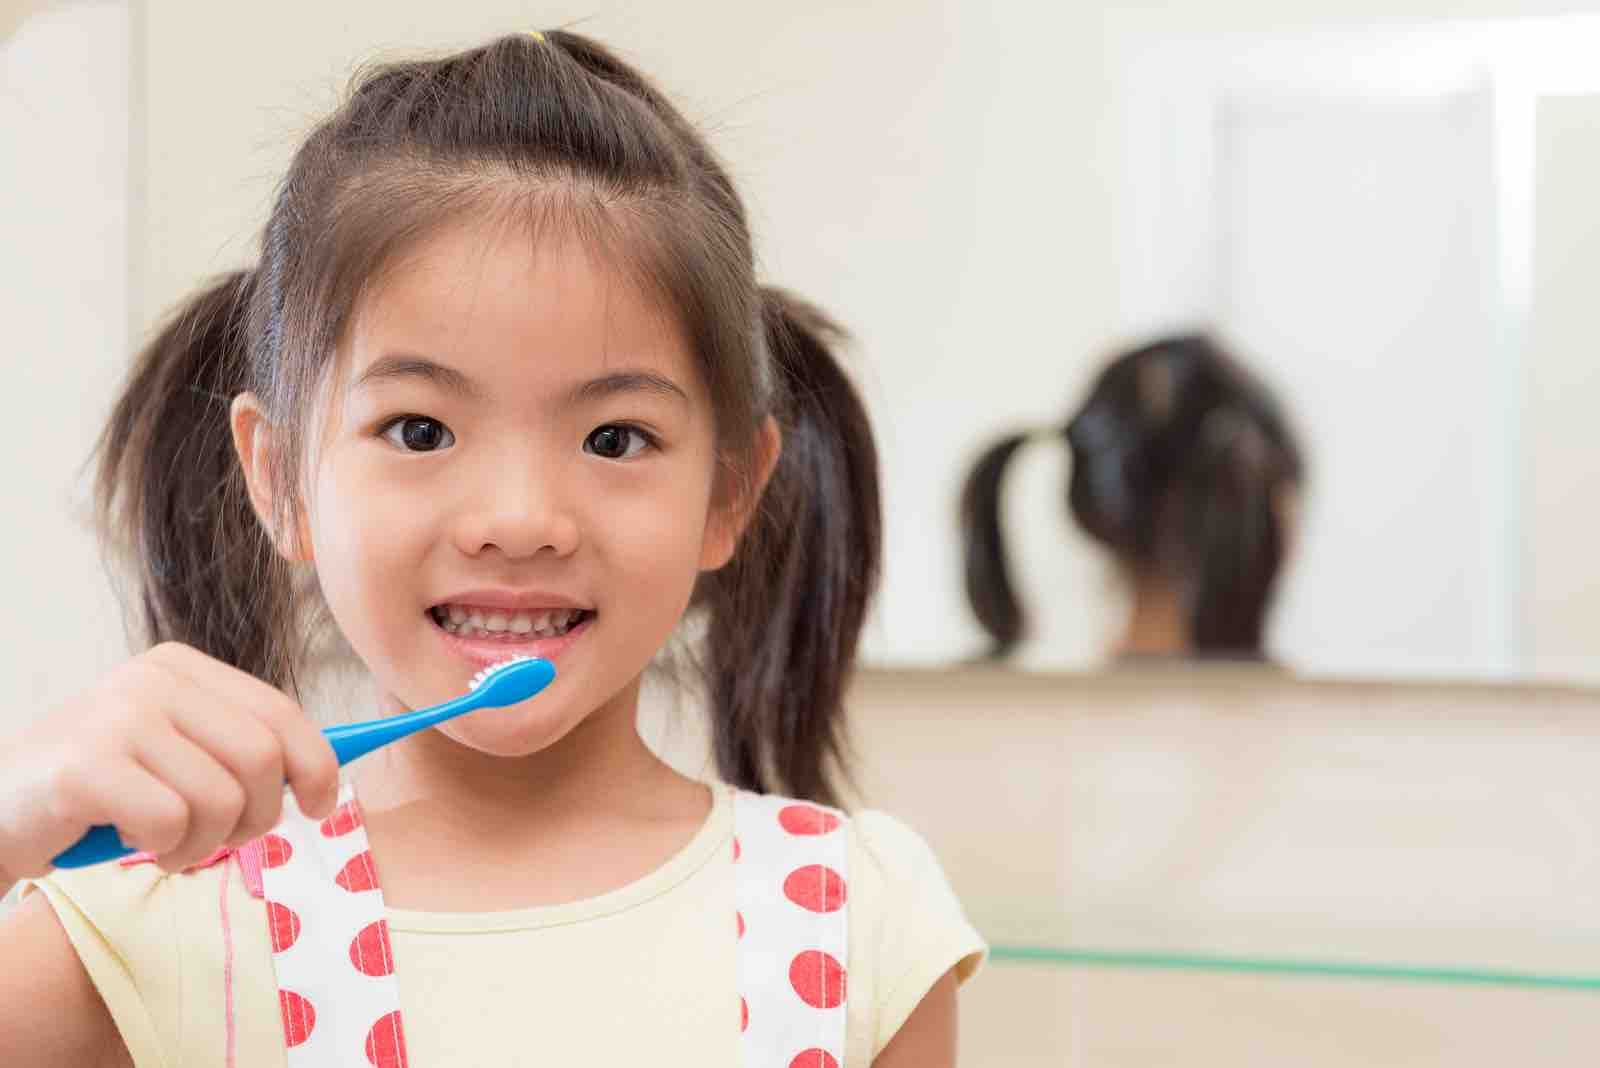 Bellaire pediatric dentist with girl brushing teeth.